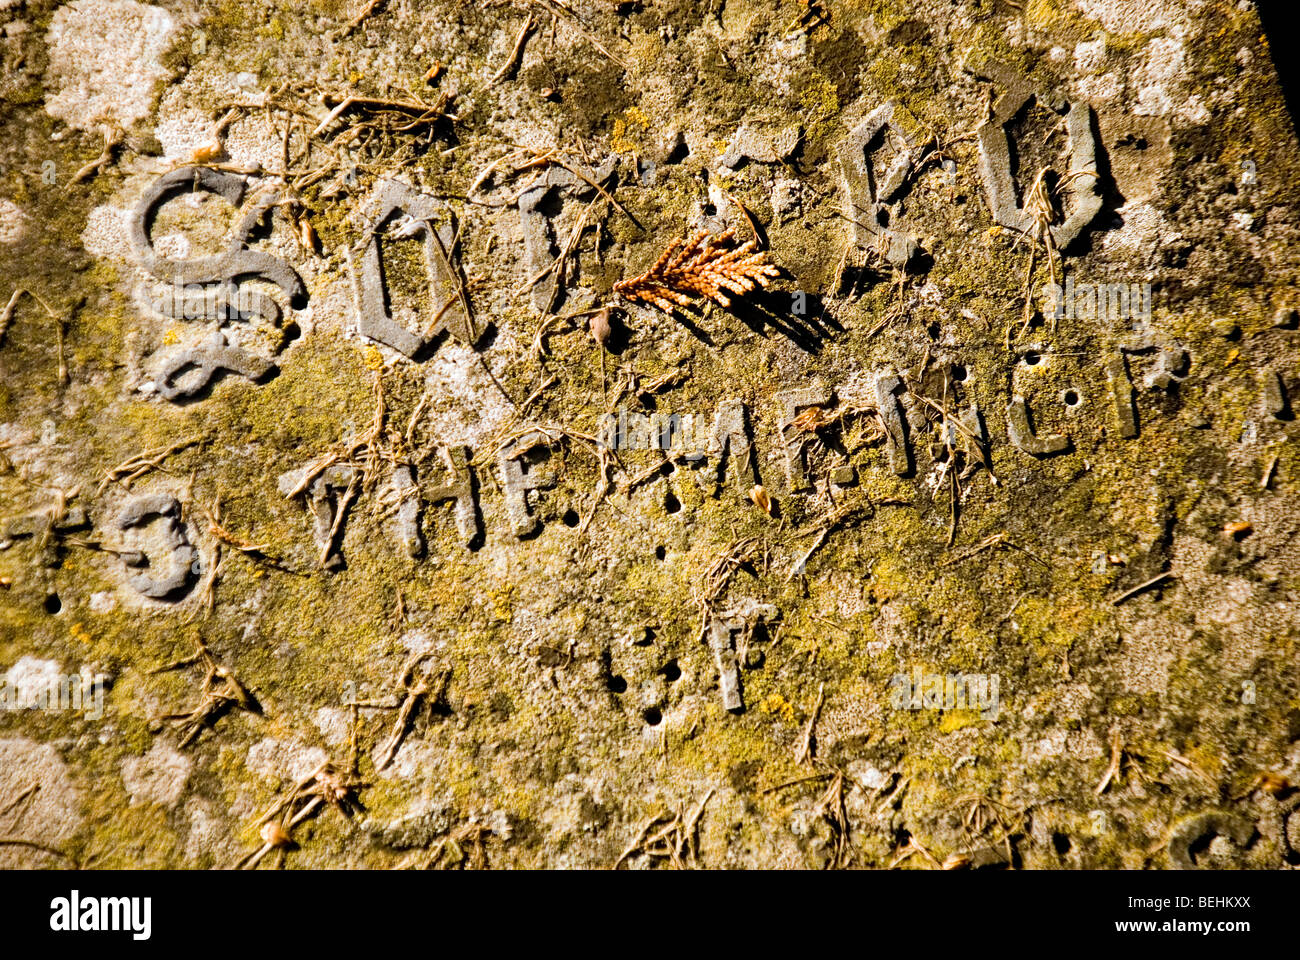 Inscription on an old tomb with letters missing saying 'Sacred To The Memory Of' - Stock Image